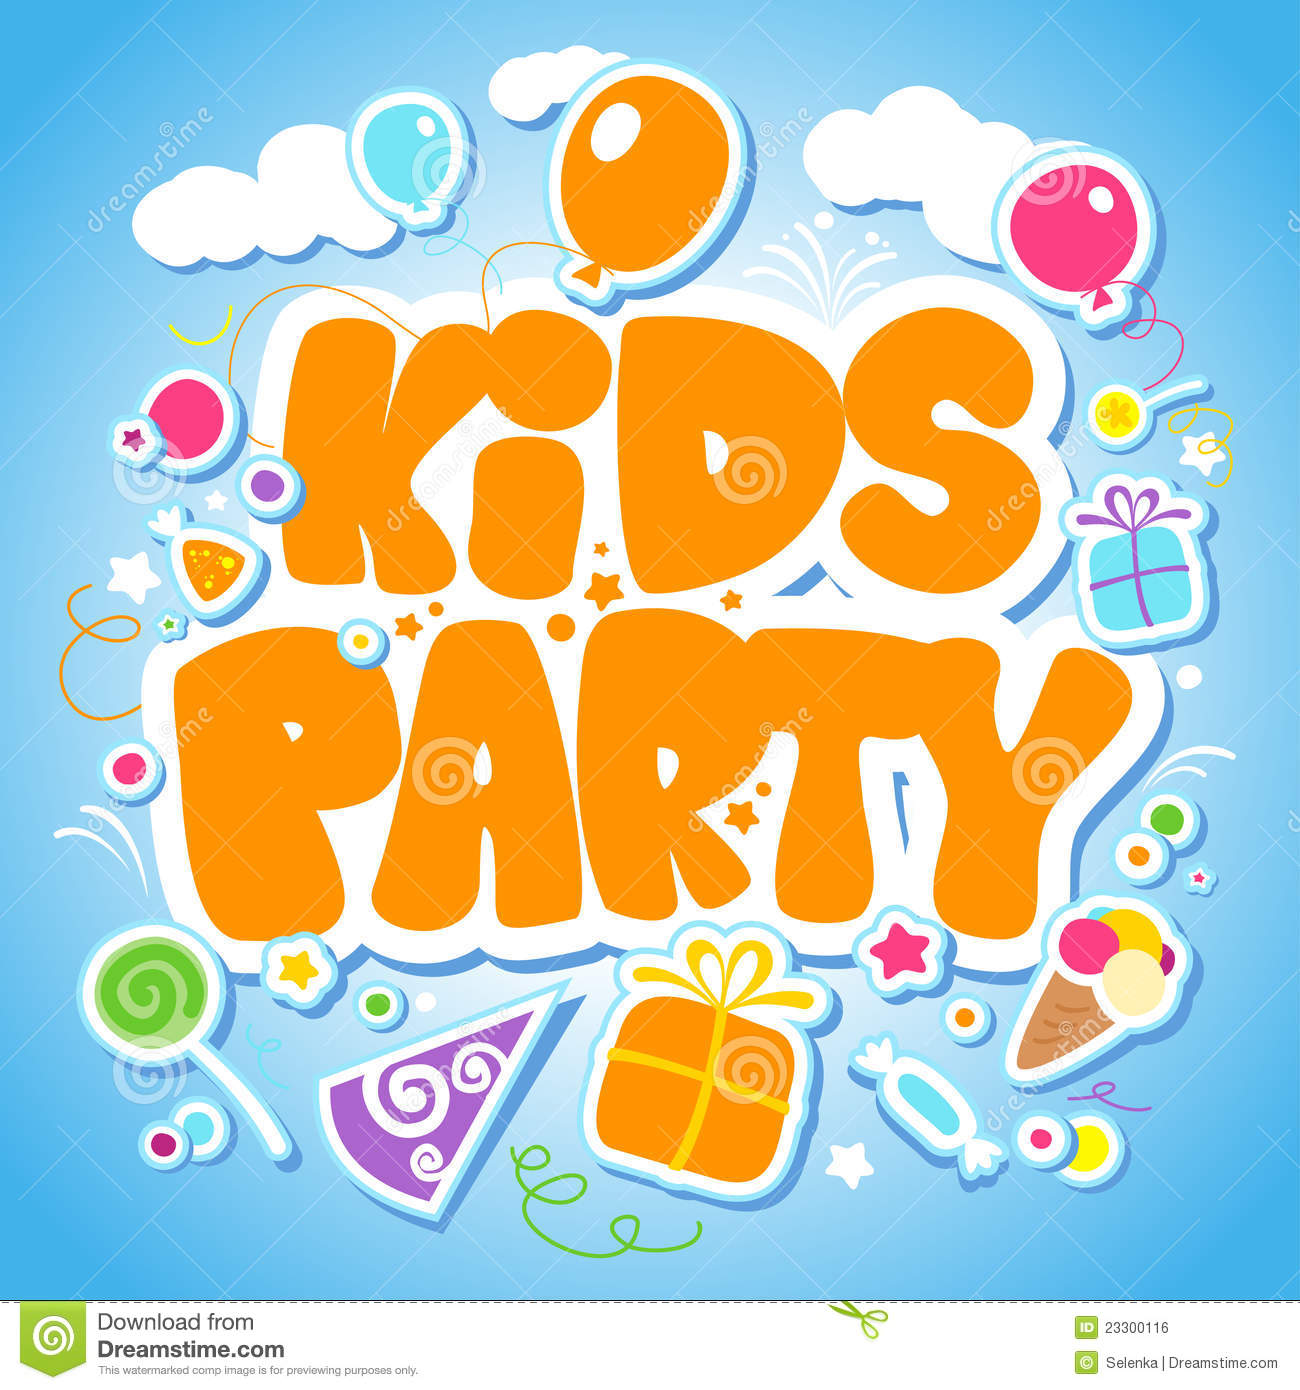 Kids Party Design Template Royalty Free Stock Image